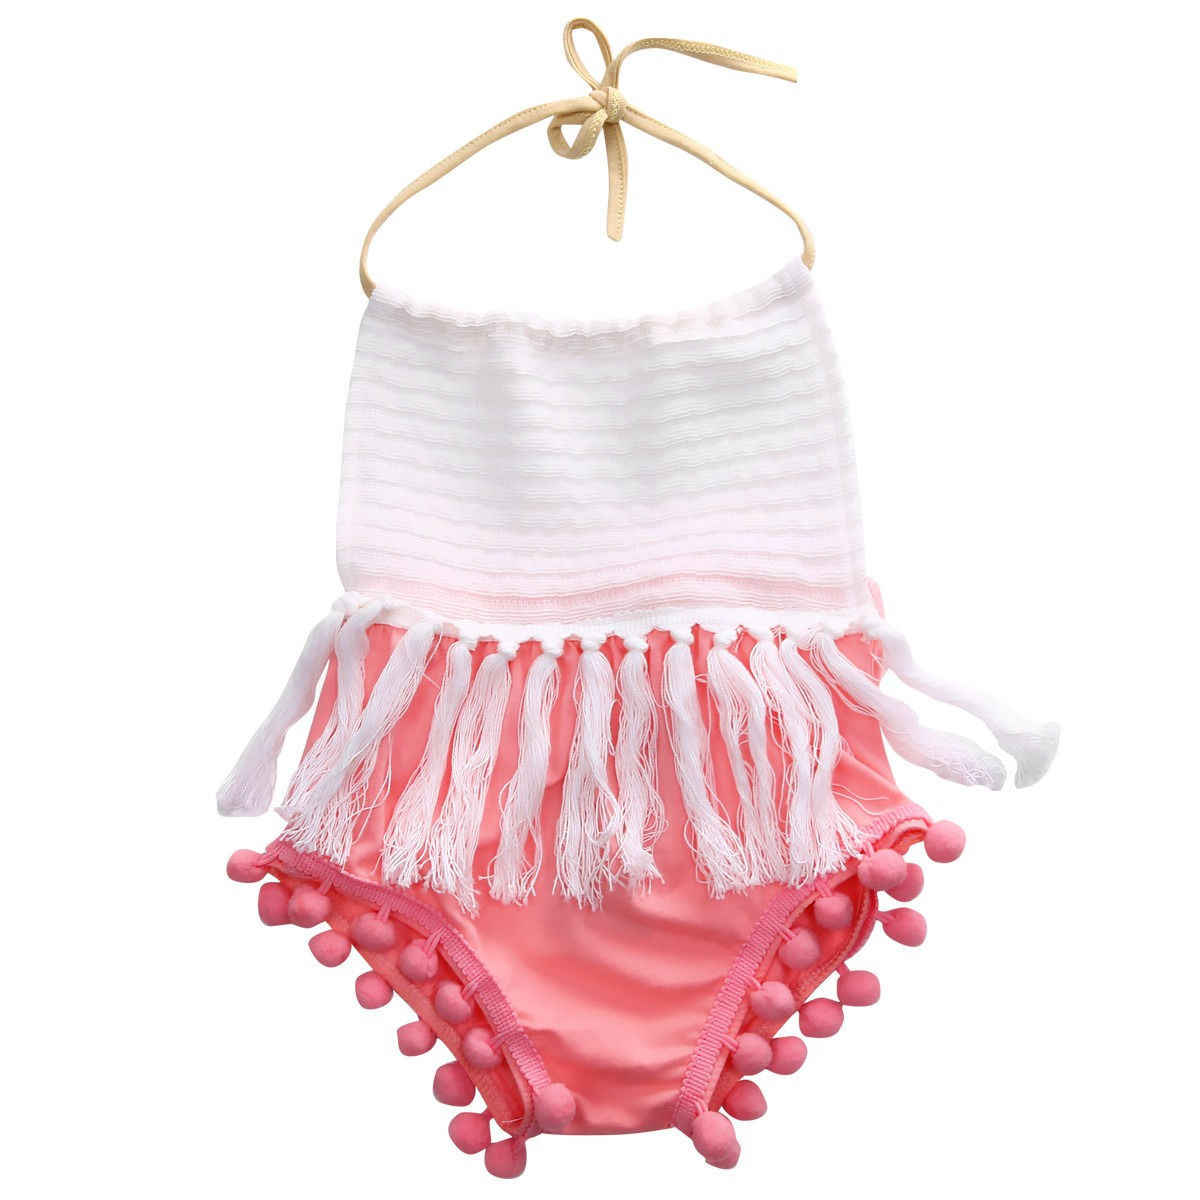 51b4b10a641 Newborn Toddler Infantil Baby Girls Clothes Tassels Fashion Romper Cute  Jumpsuit Sleeveless Outfits 0-24M